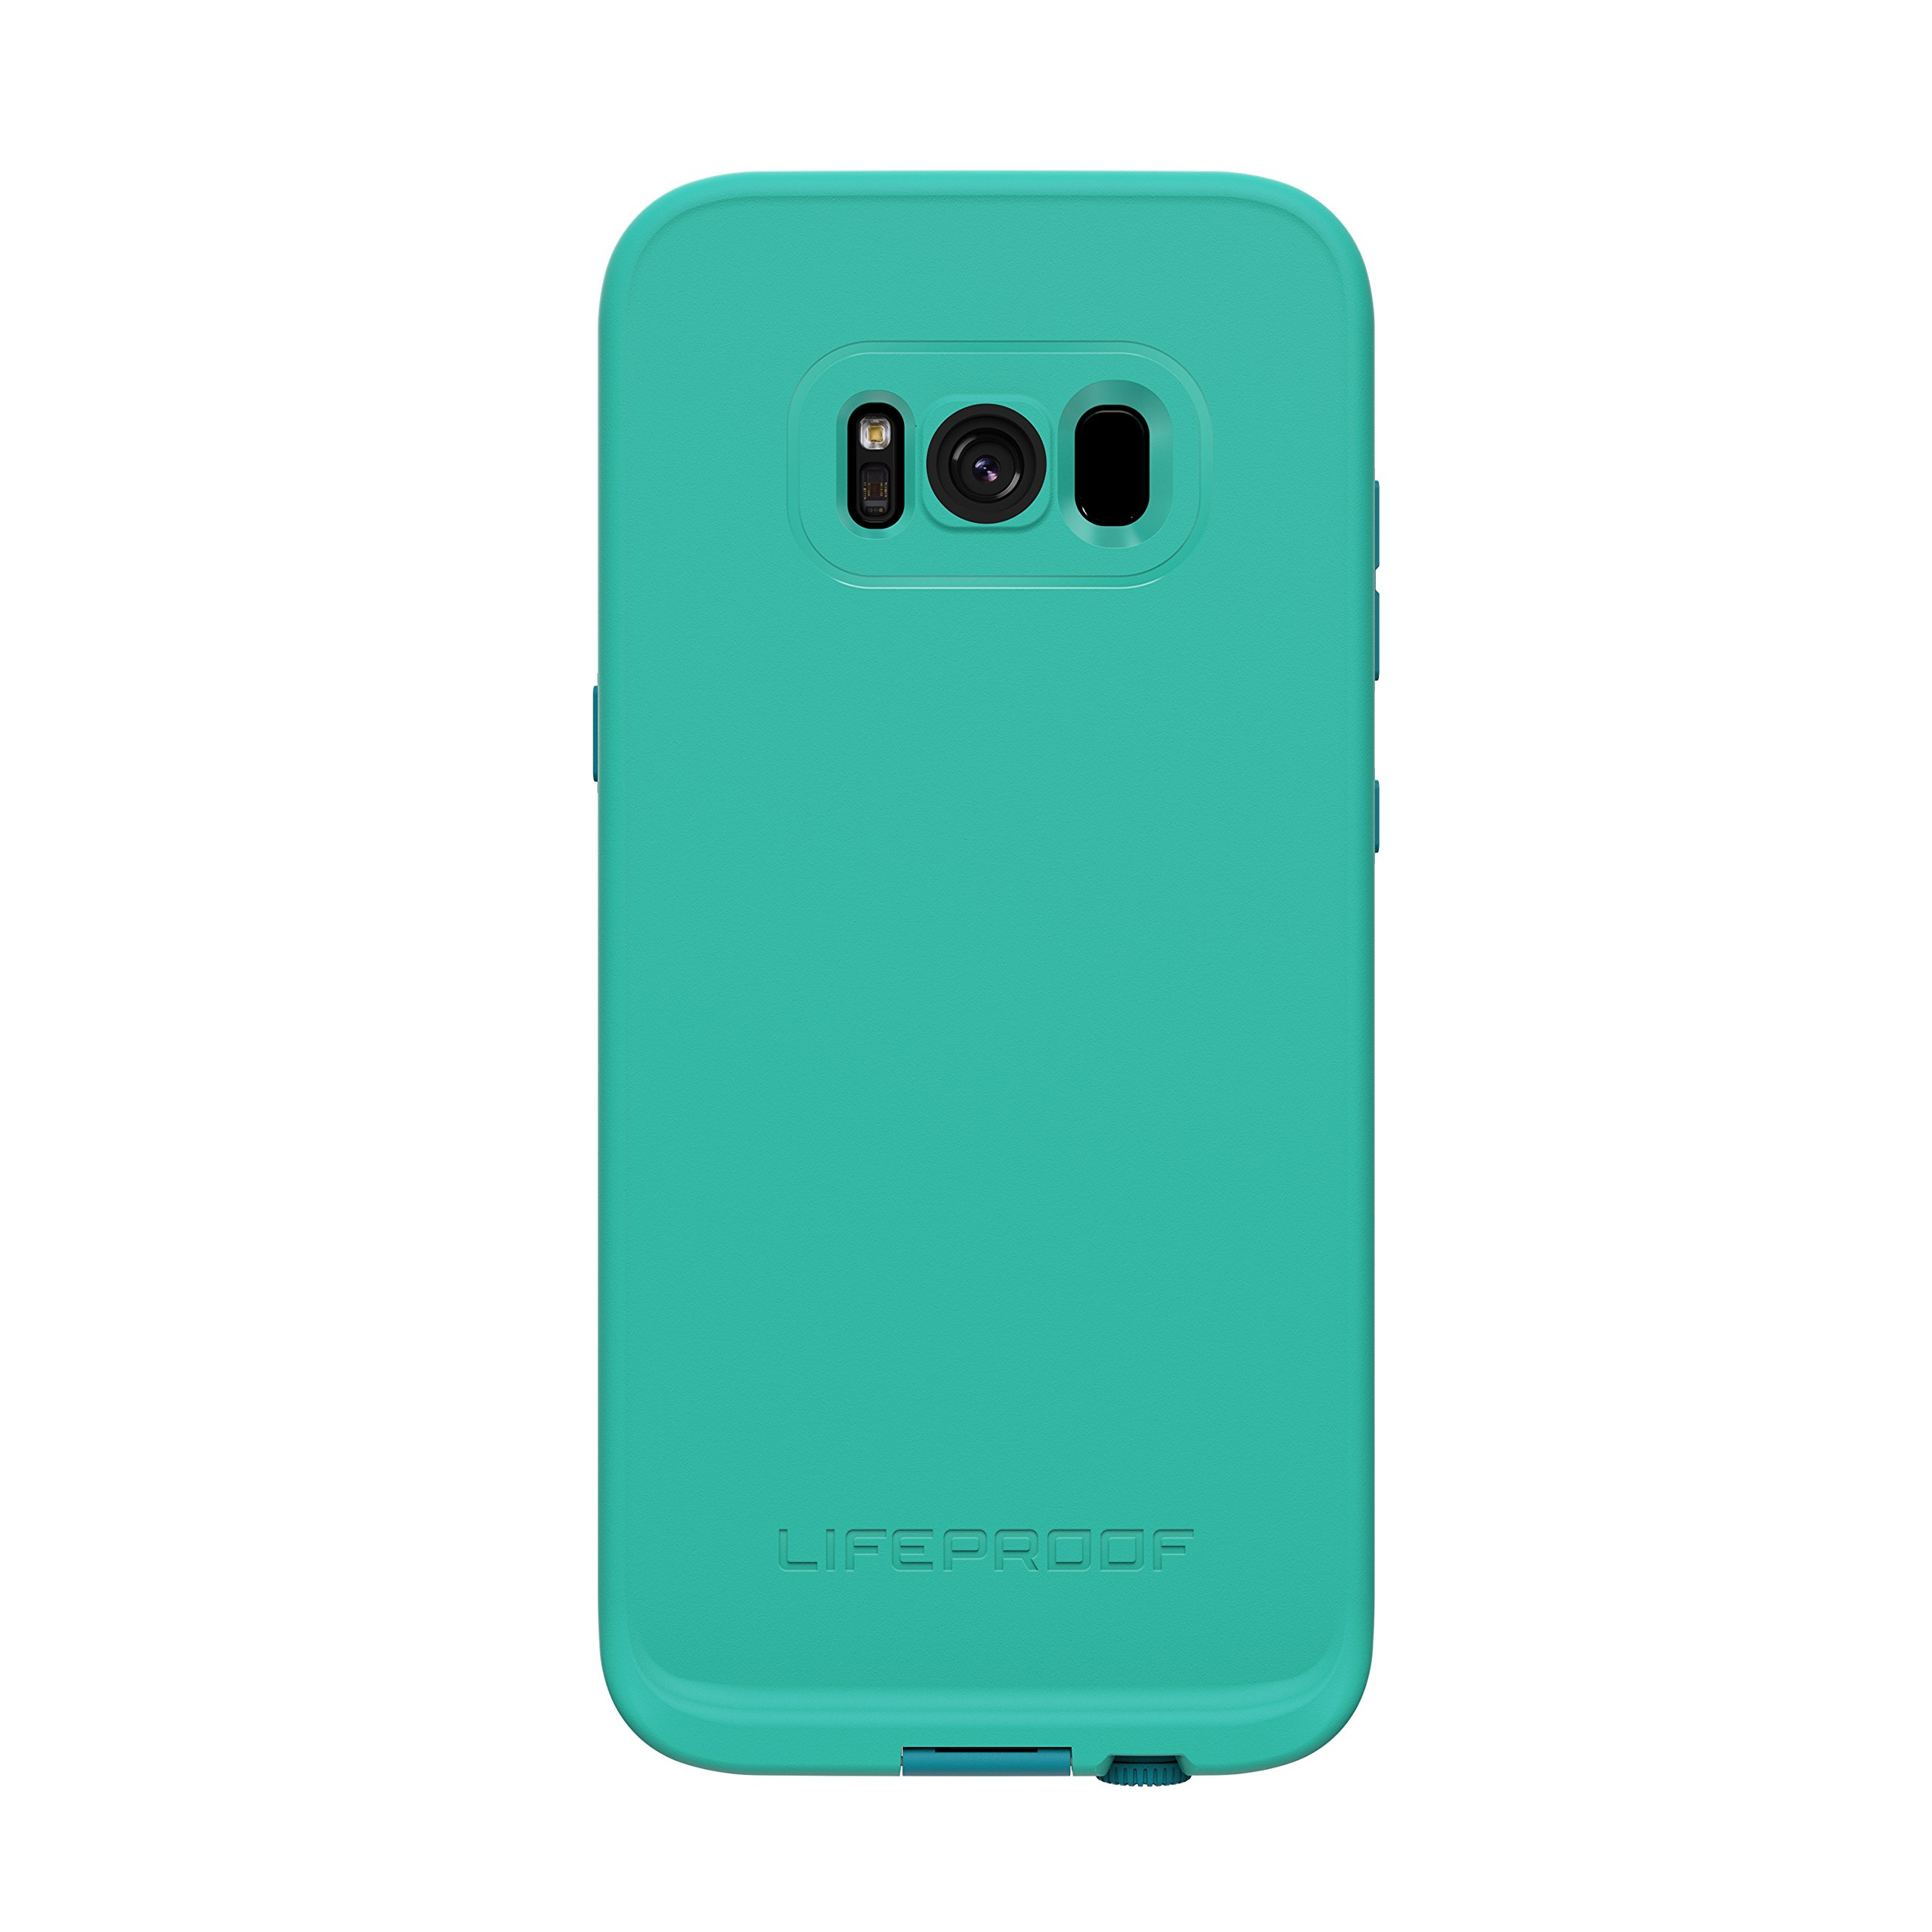 Lifeproof FRĒ SERIES Waterproof Case for Samsung Galaxy S8 (ONLY) - Retail Packaging - SUNSET BAY (LIGHT TEAL/MAUI BLUE/MANGO TANGO)